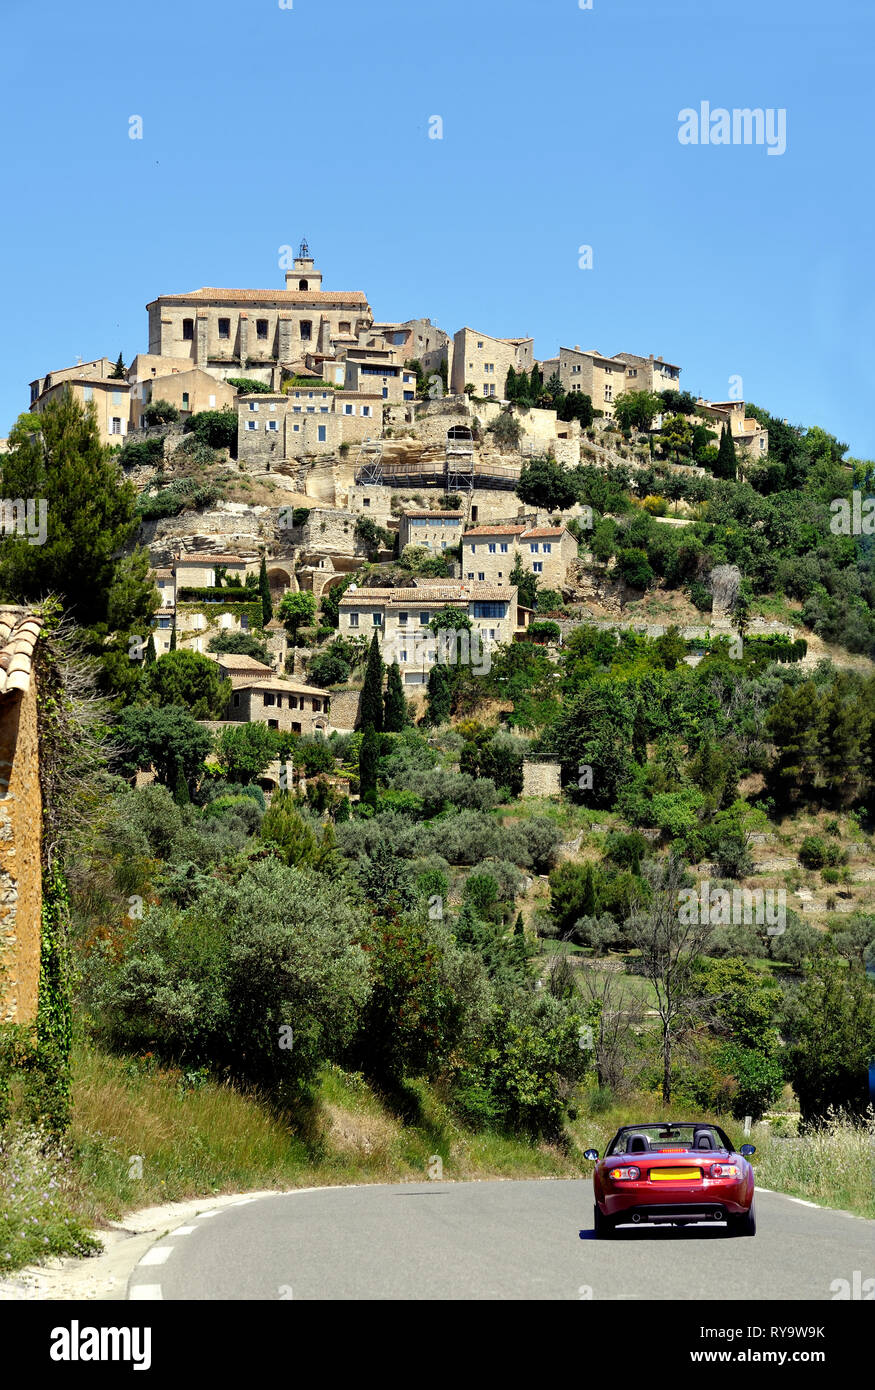 View At Menerbes In The Luberon France With A Sports Car On The Road Leading To The Village Stock Photo Alamy